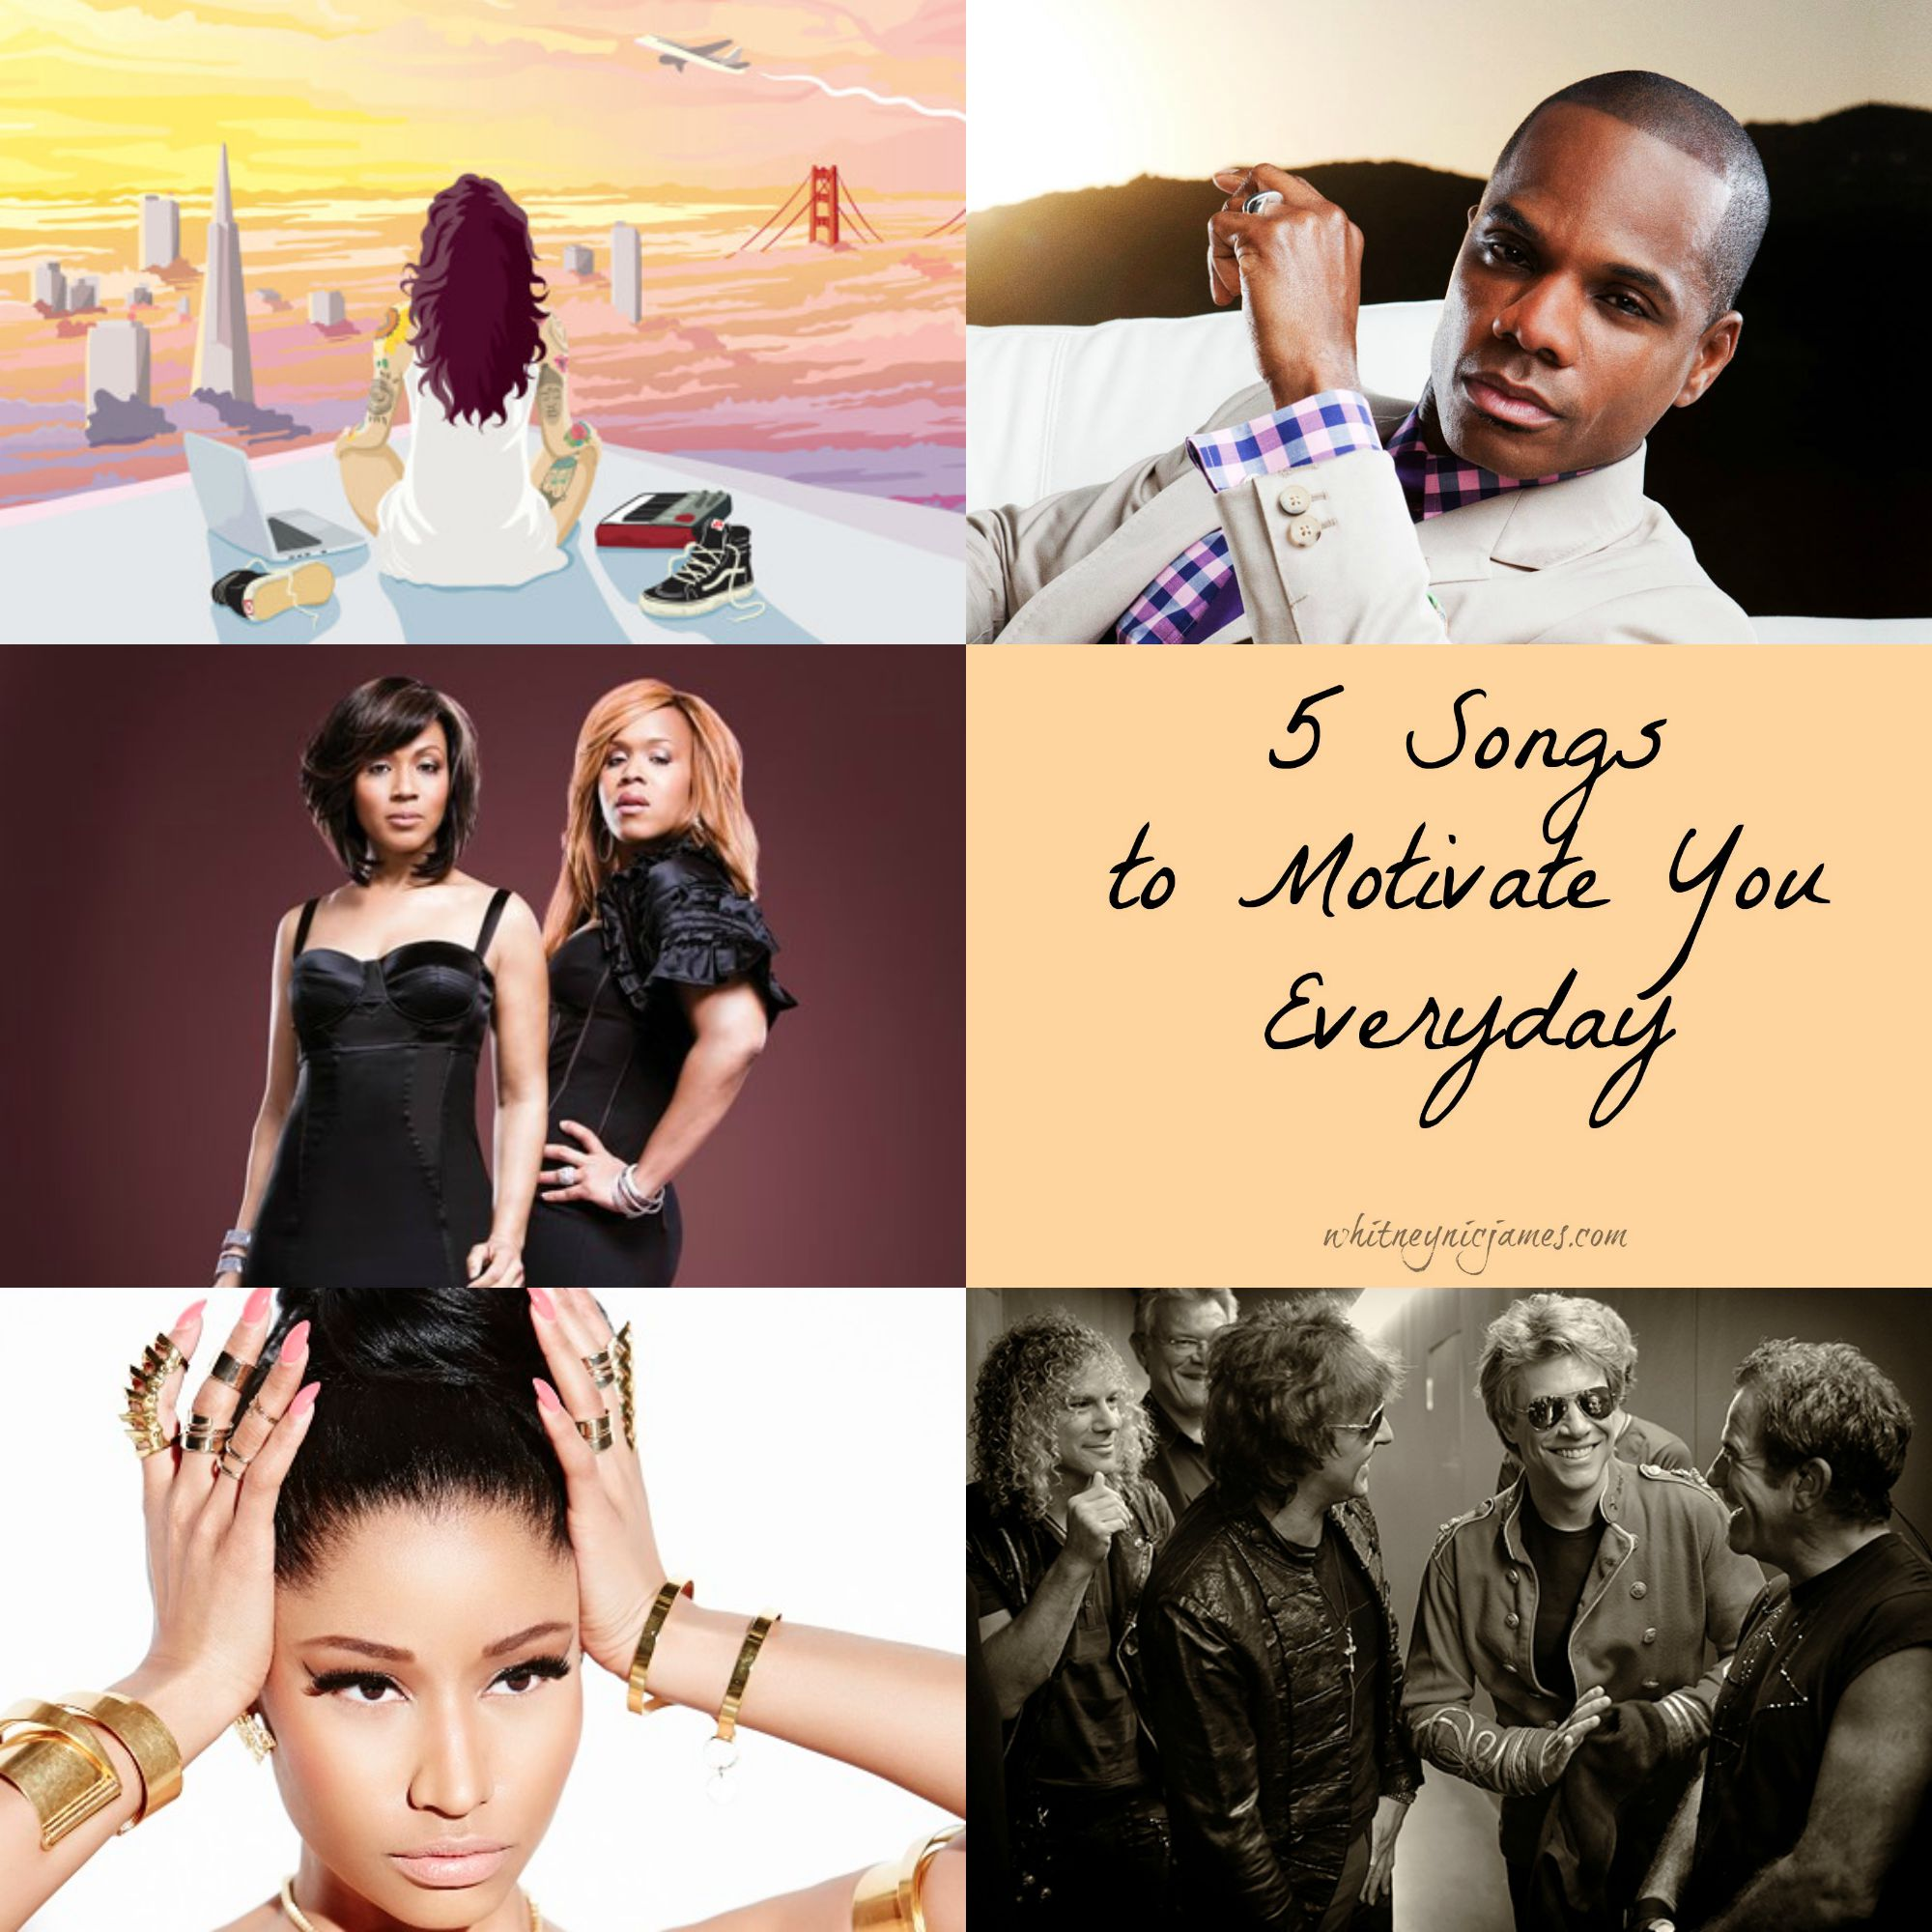 Songs to Motivate You Everyday